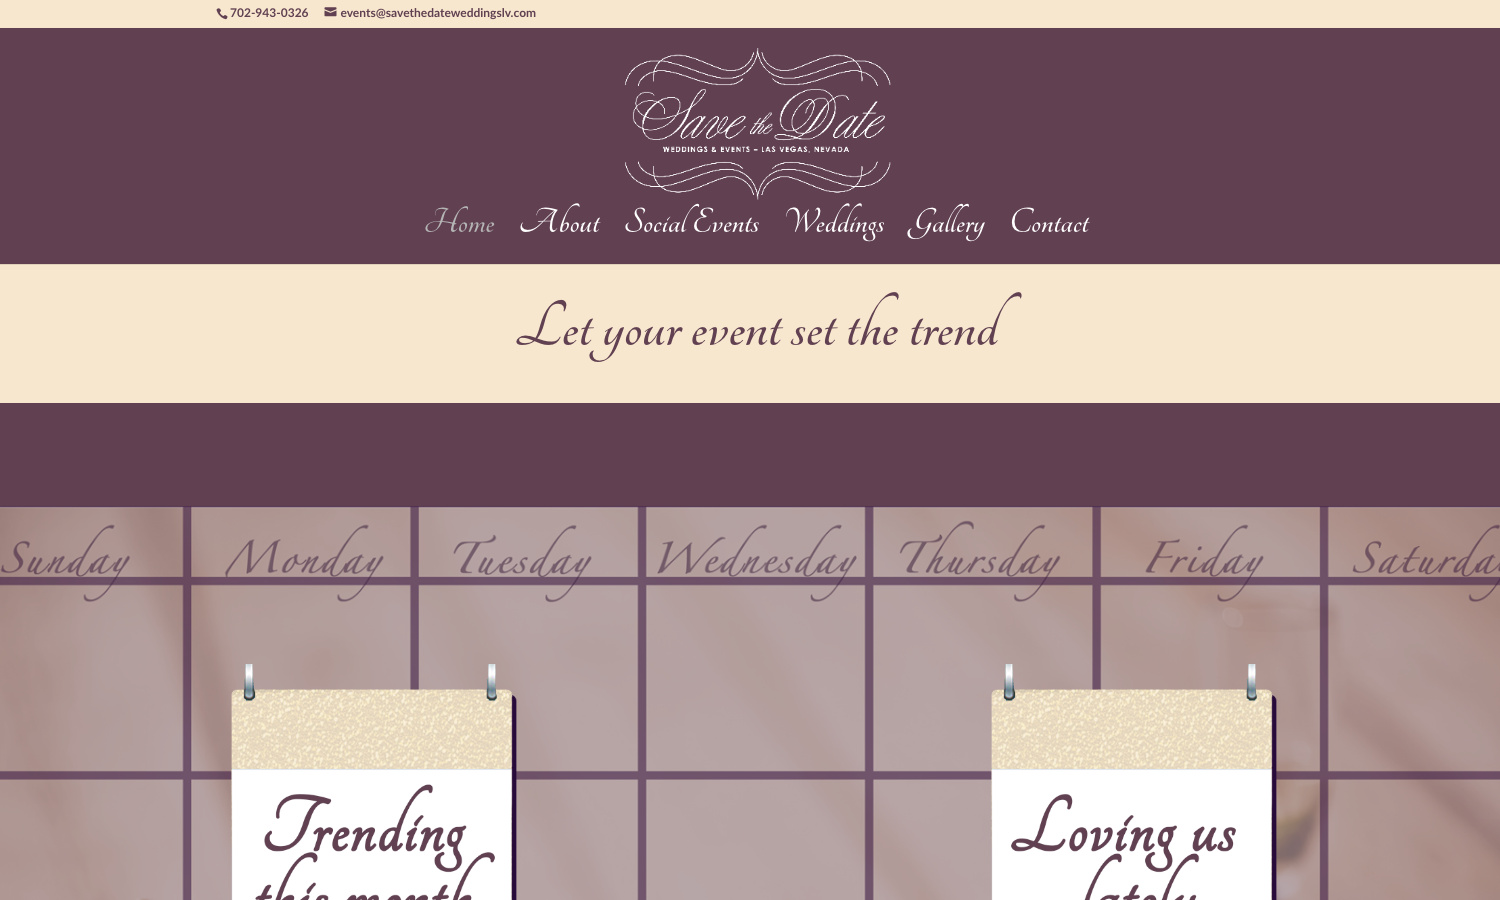 Save the Date Weddings Website